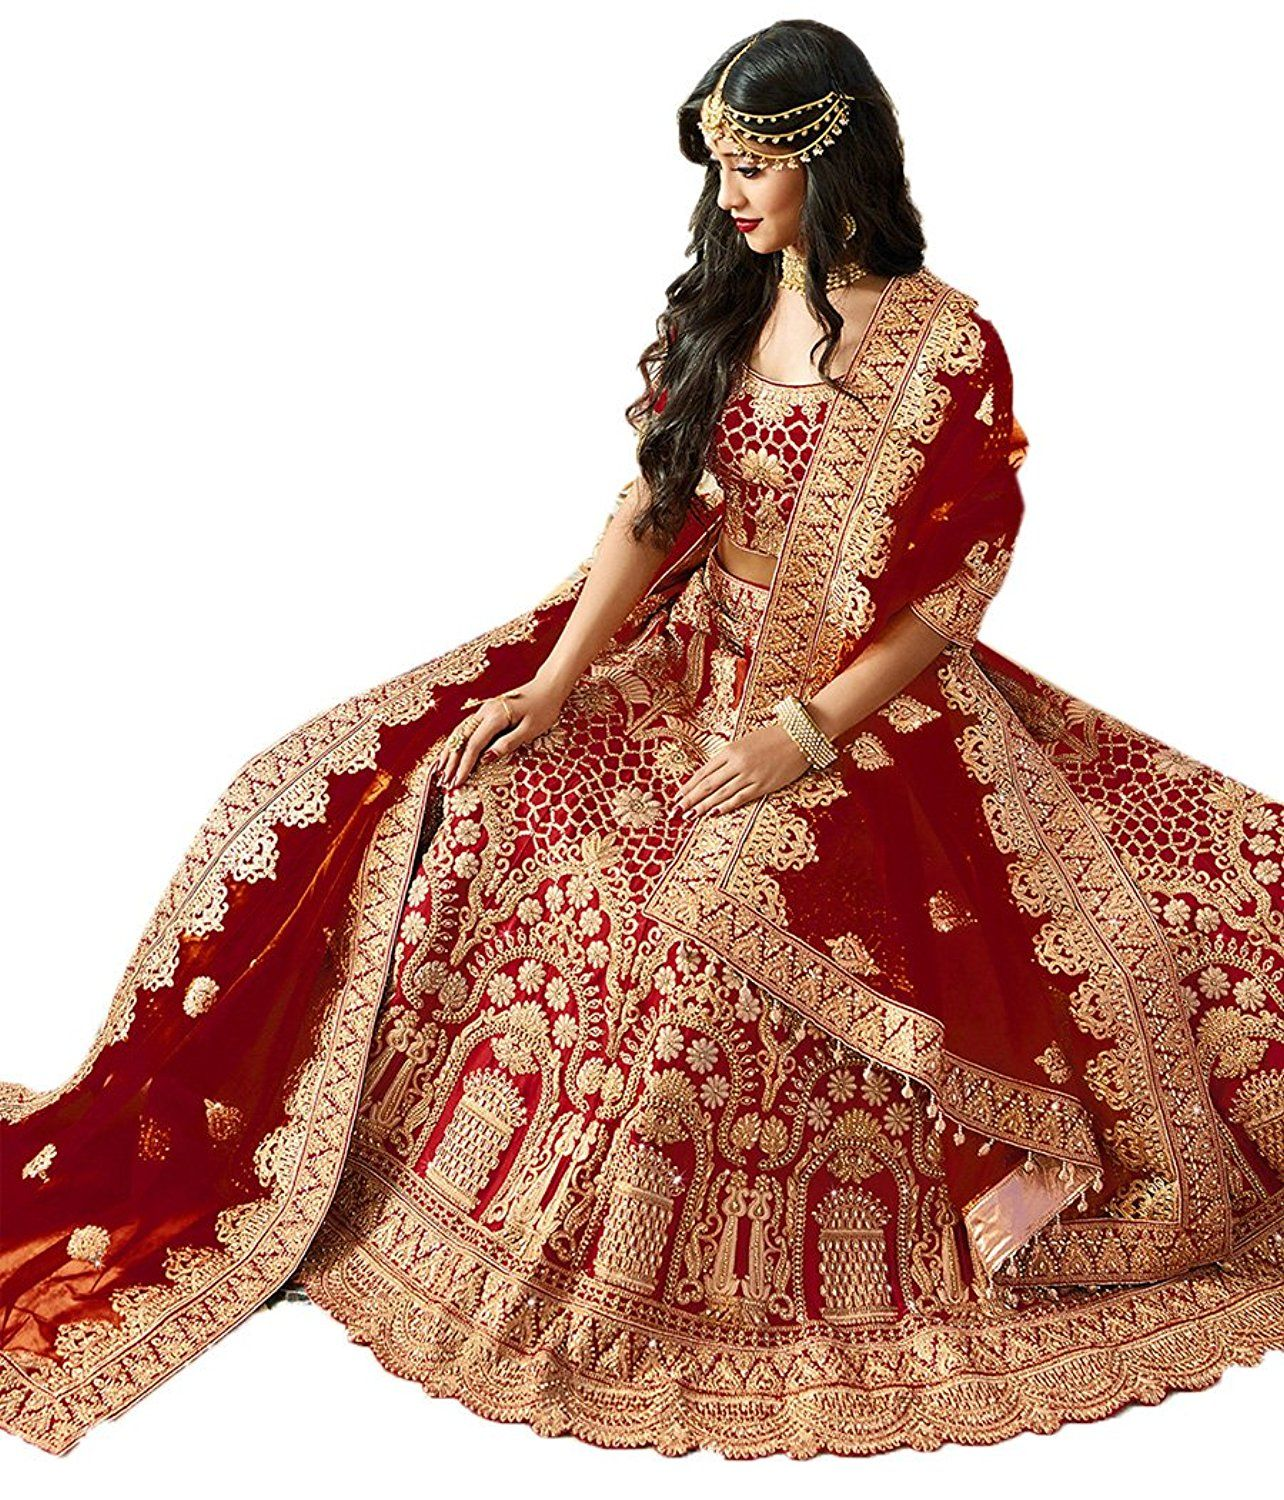 757804bd82cbf Rozdeal Women s Maroon Havy Taffeta Silk Lehenga Choli ( RDL129-SN72 )   Amazon.in  Clothing   Accessories